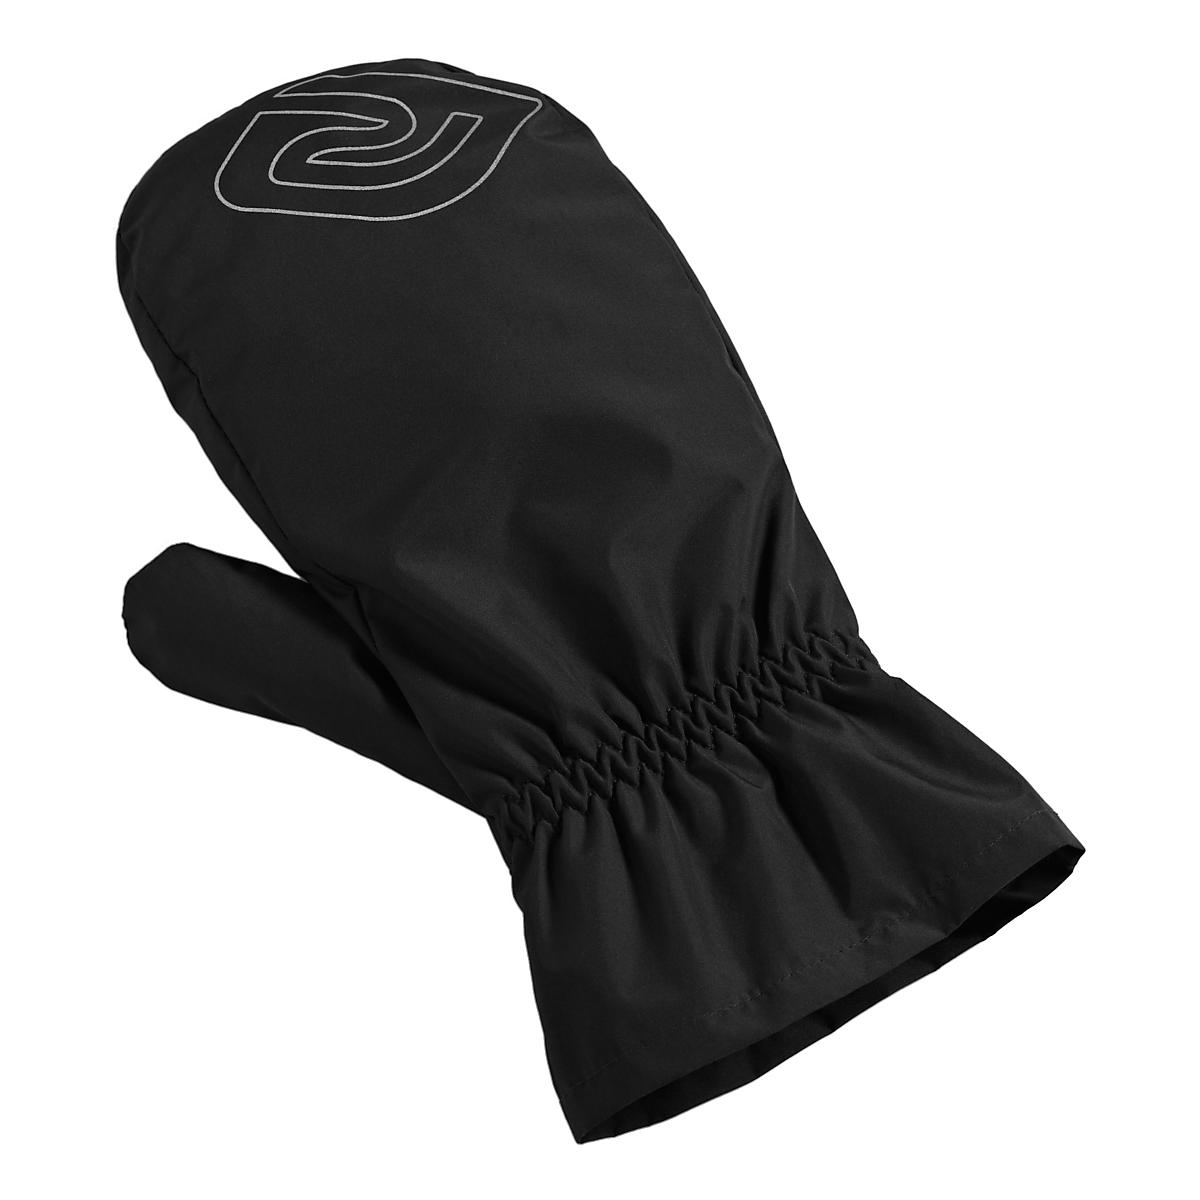 R-Gear�High Five 2-in-1 Mitten-Glove Combo